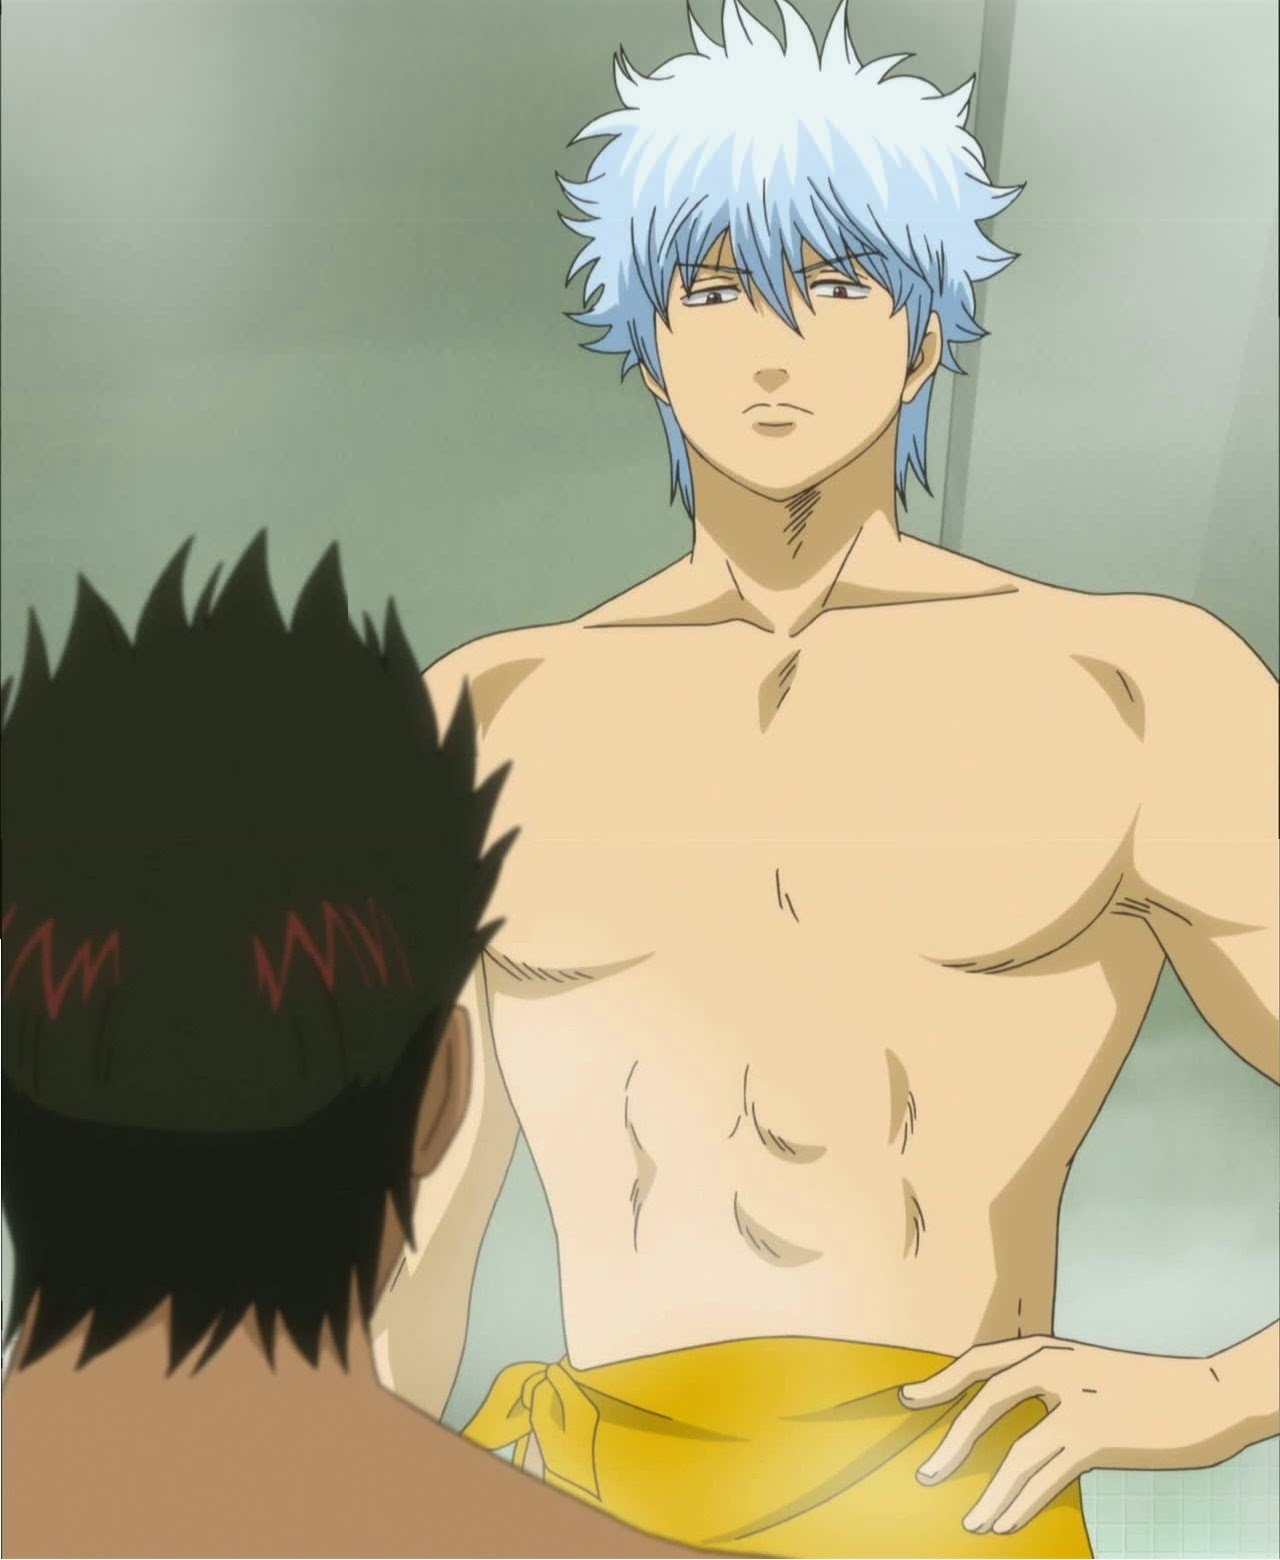 Gintoki Sakata, Gintama, hottest anime guys, shirtless